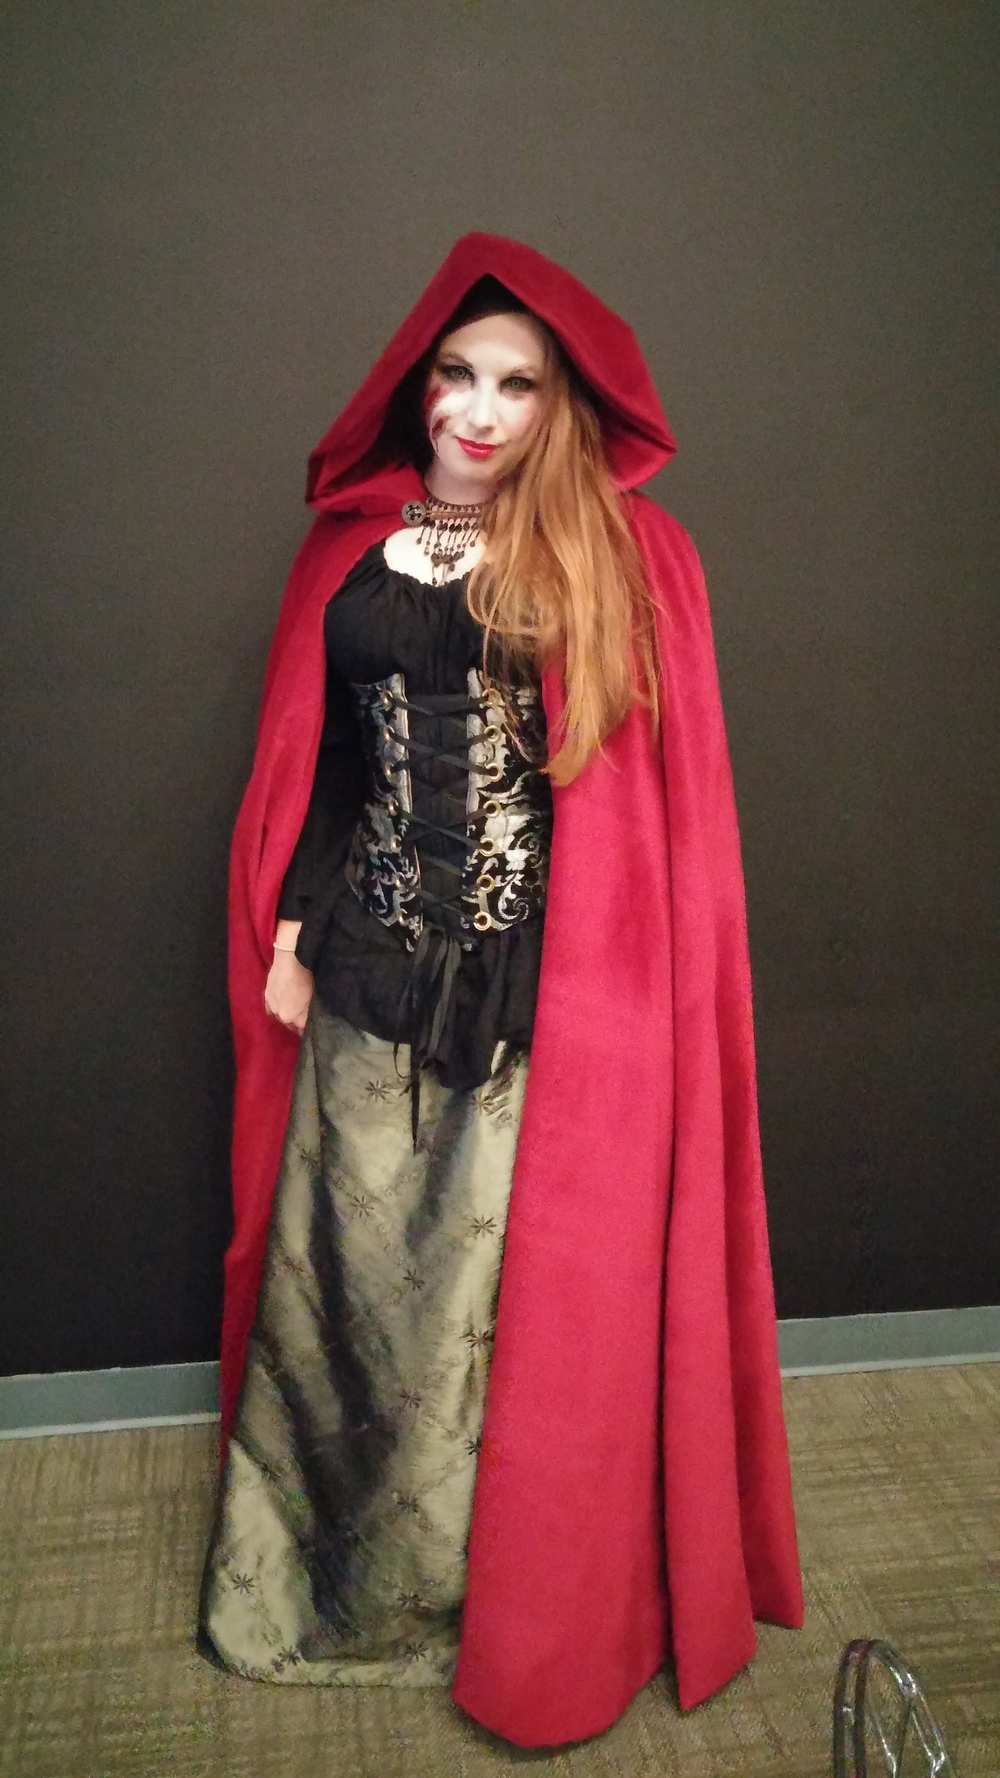 Danielle was Little Red Riding Hood post-wolf attack!